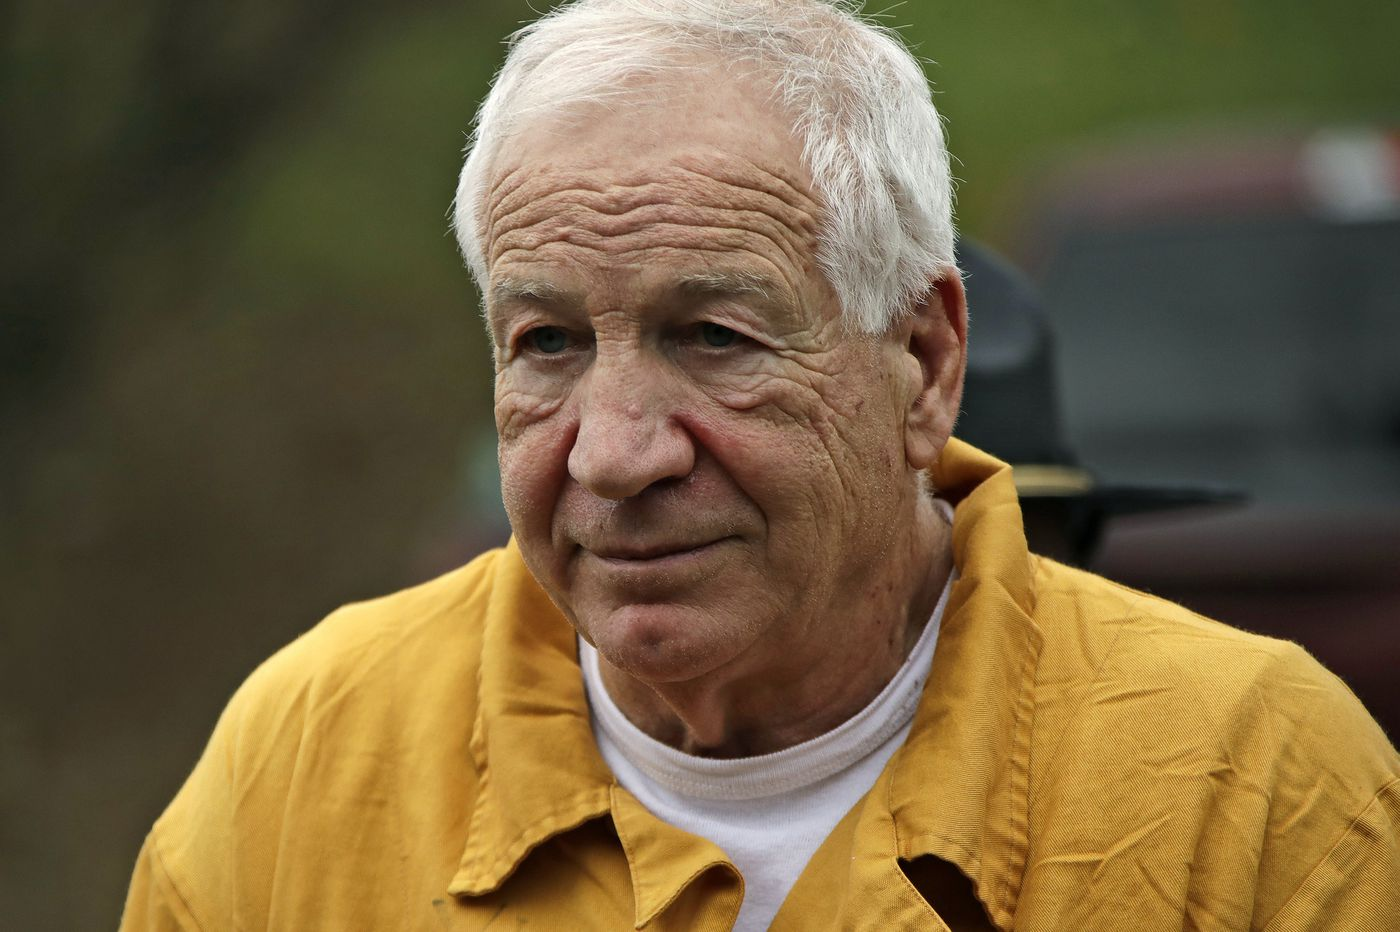 After Sandusky scandal, Penn State violated law protecting students in sex-abuse complaints, U.S. says